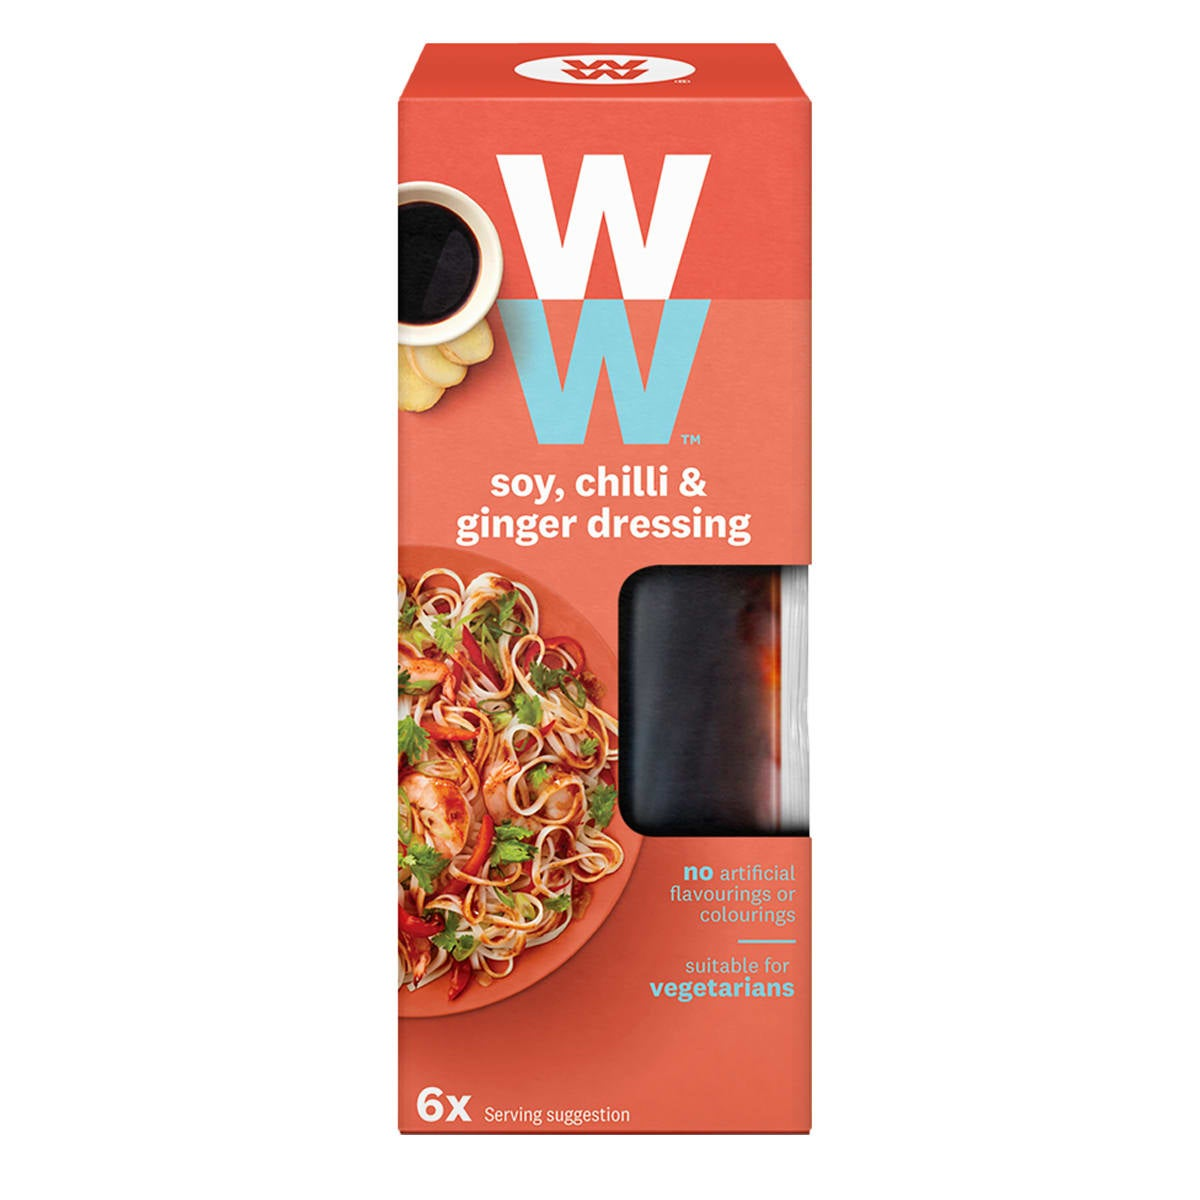 Box of 6 sachets, ZeroPoints™ Asian-inspired WW soy, chilli and ginger dressing, instant flavor booster, suitable for vegetarians